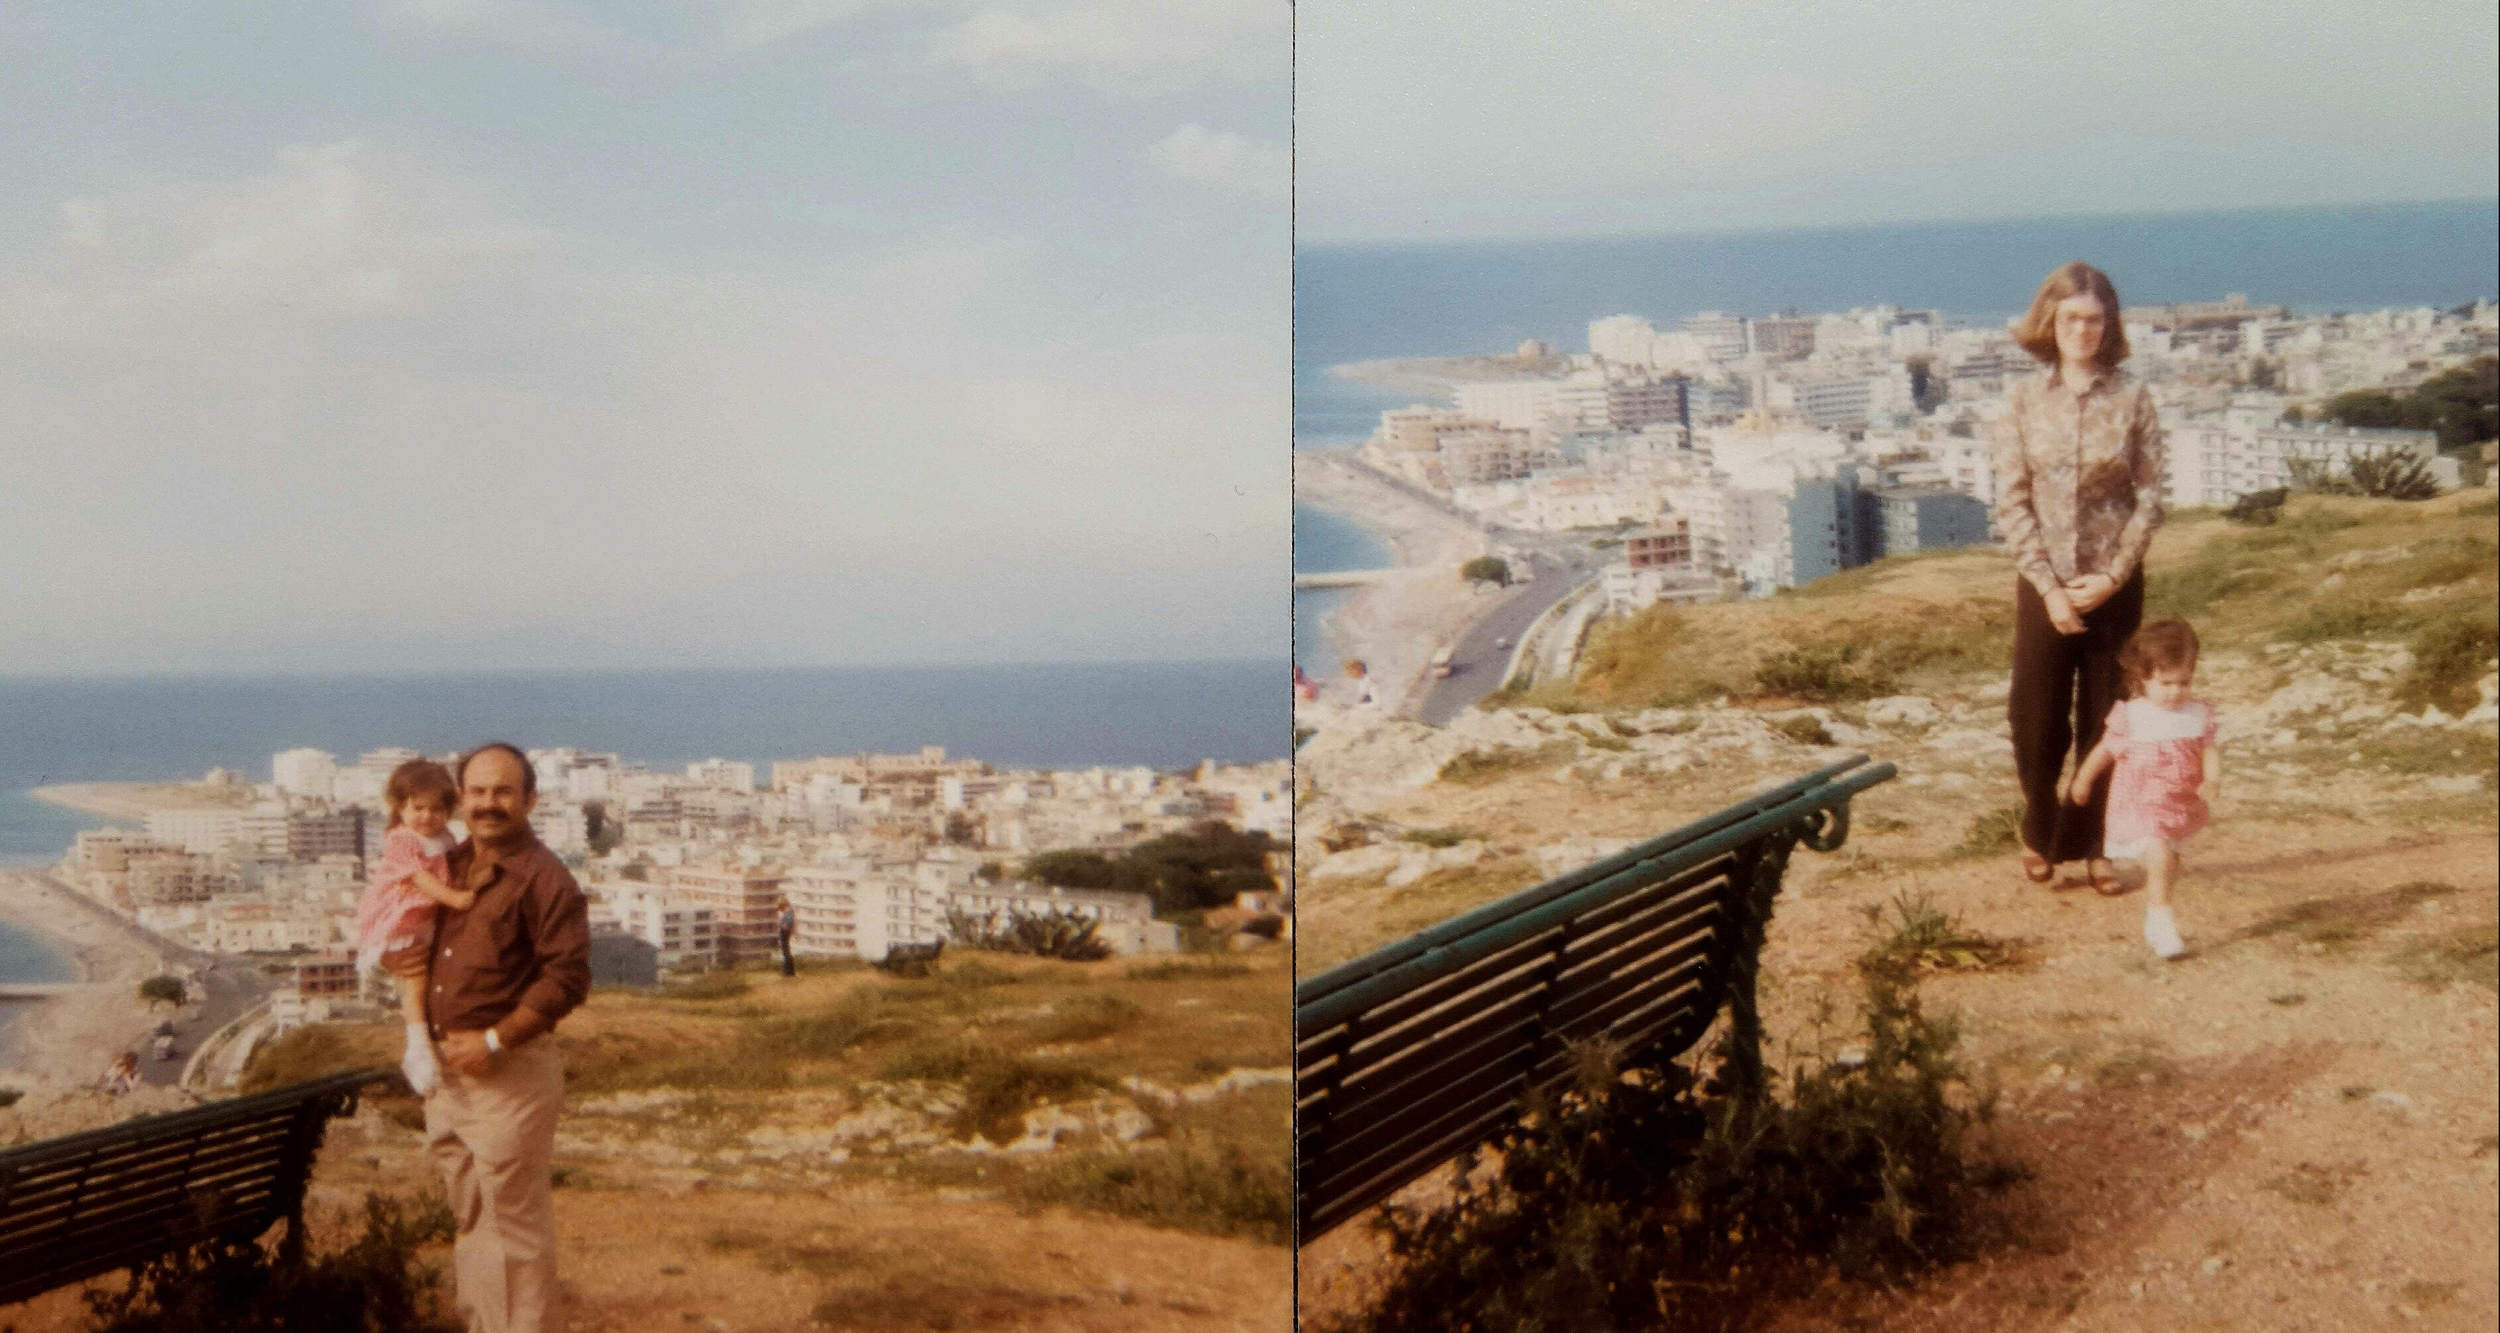 Rhodes, Greece: 1980